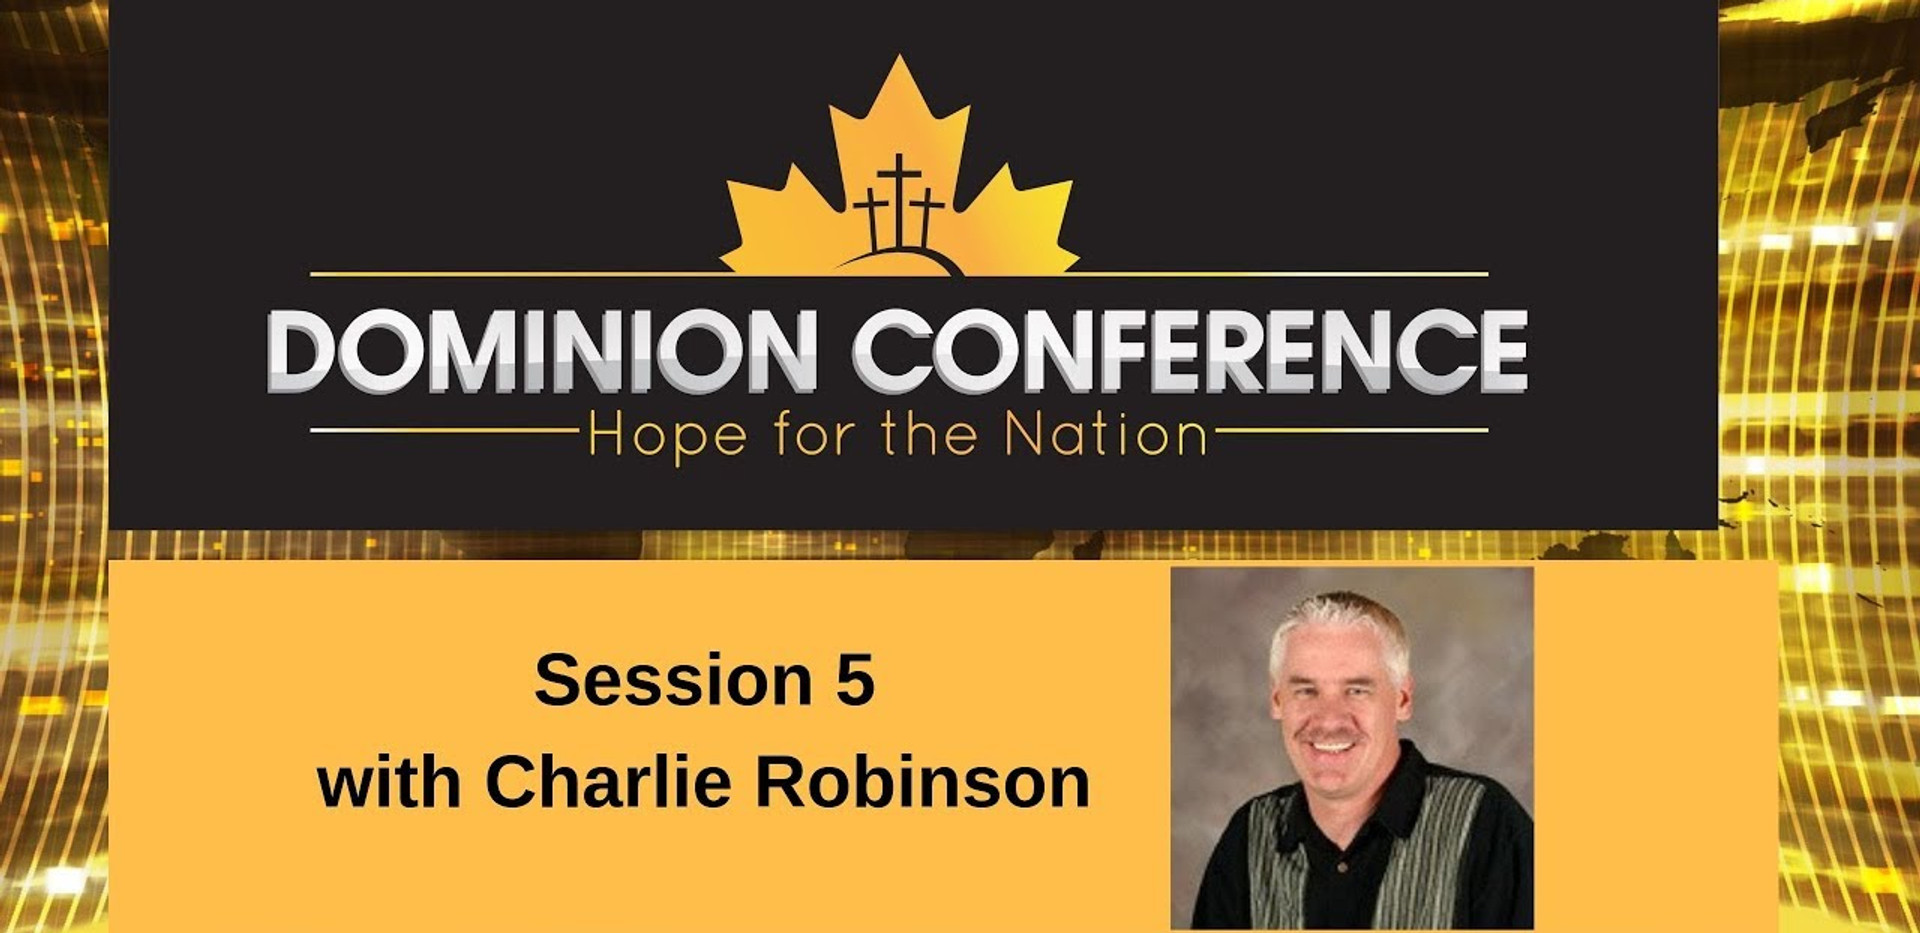 Dominion Conference Lethbridge 2019 | Session Five | Sunday, June 30th 2019 | Charlie Robinson